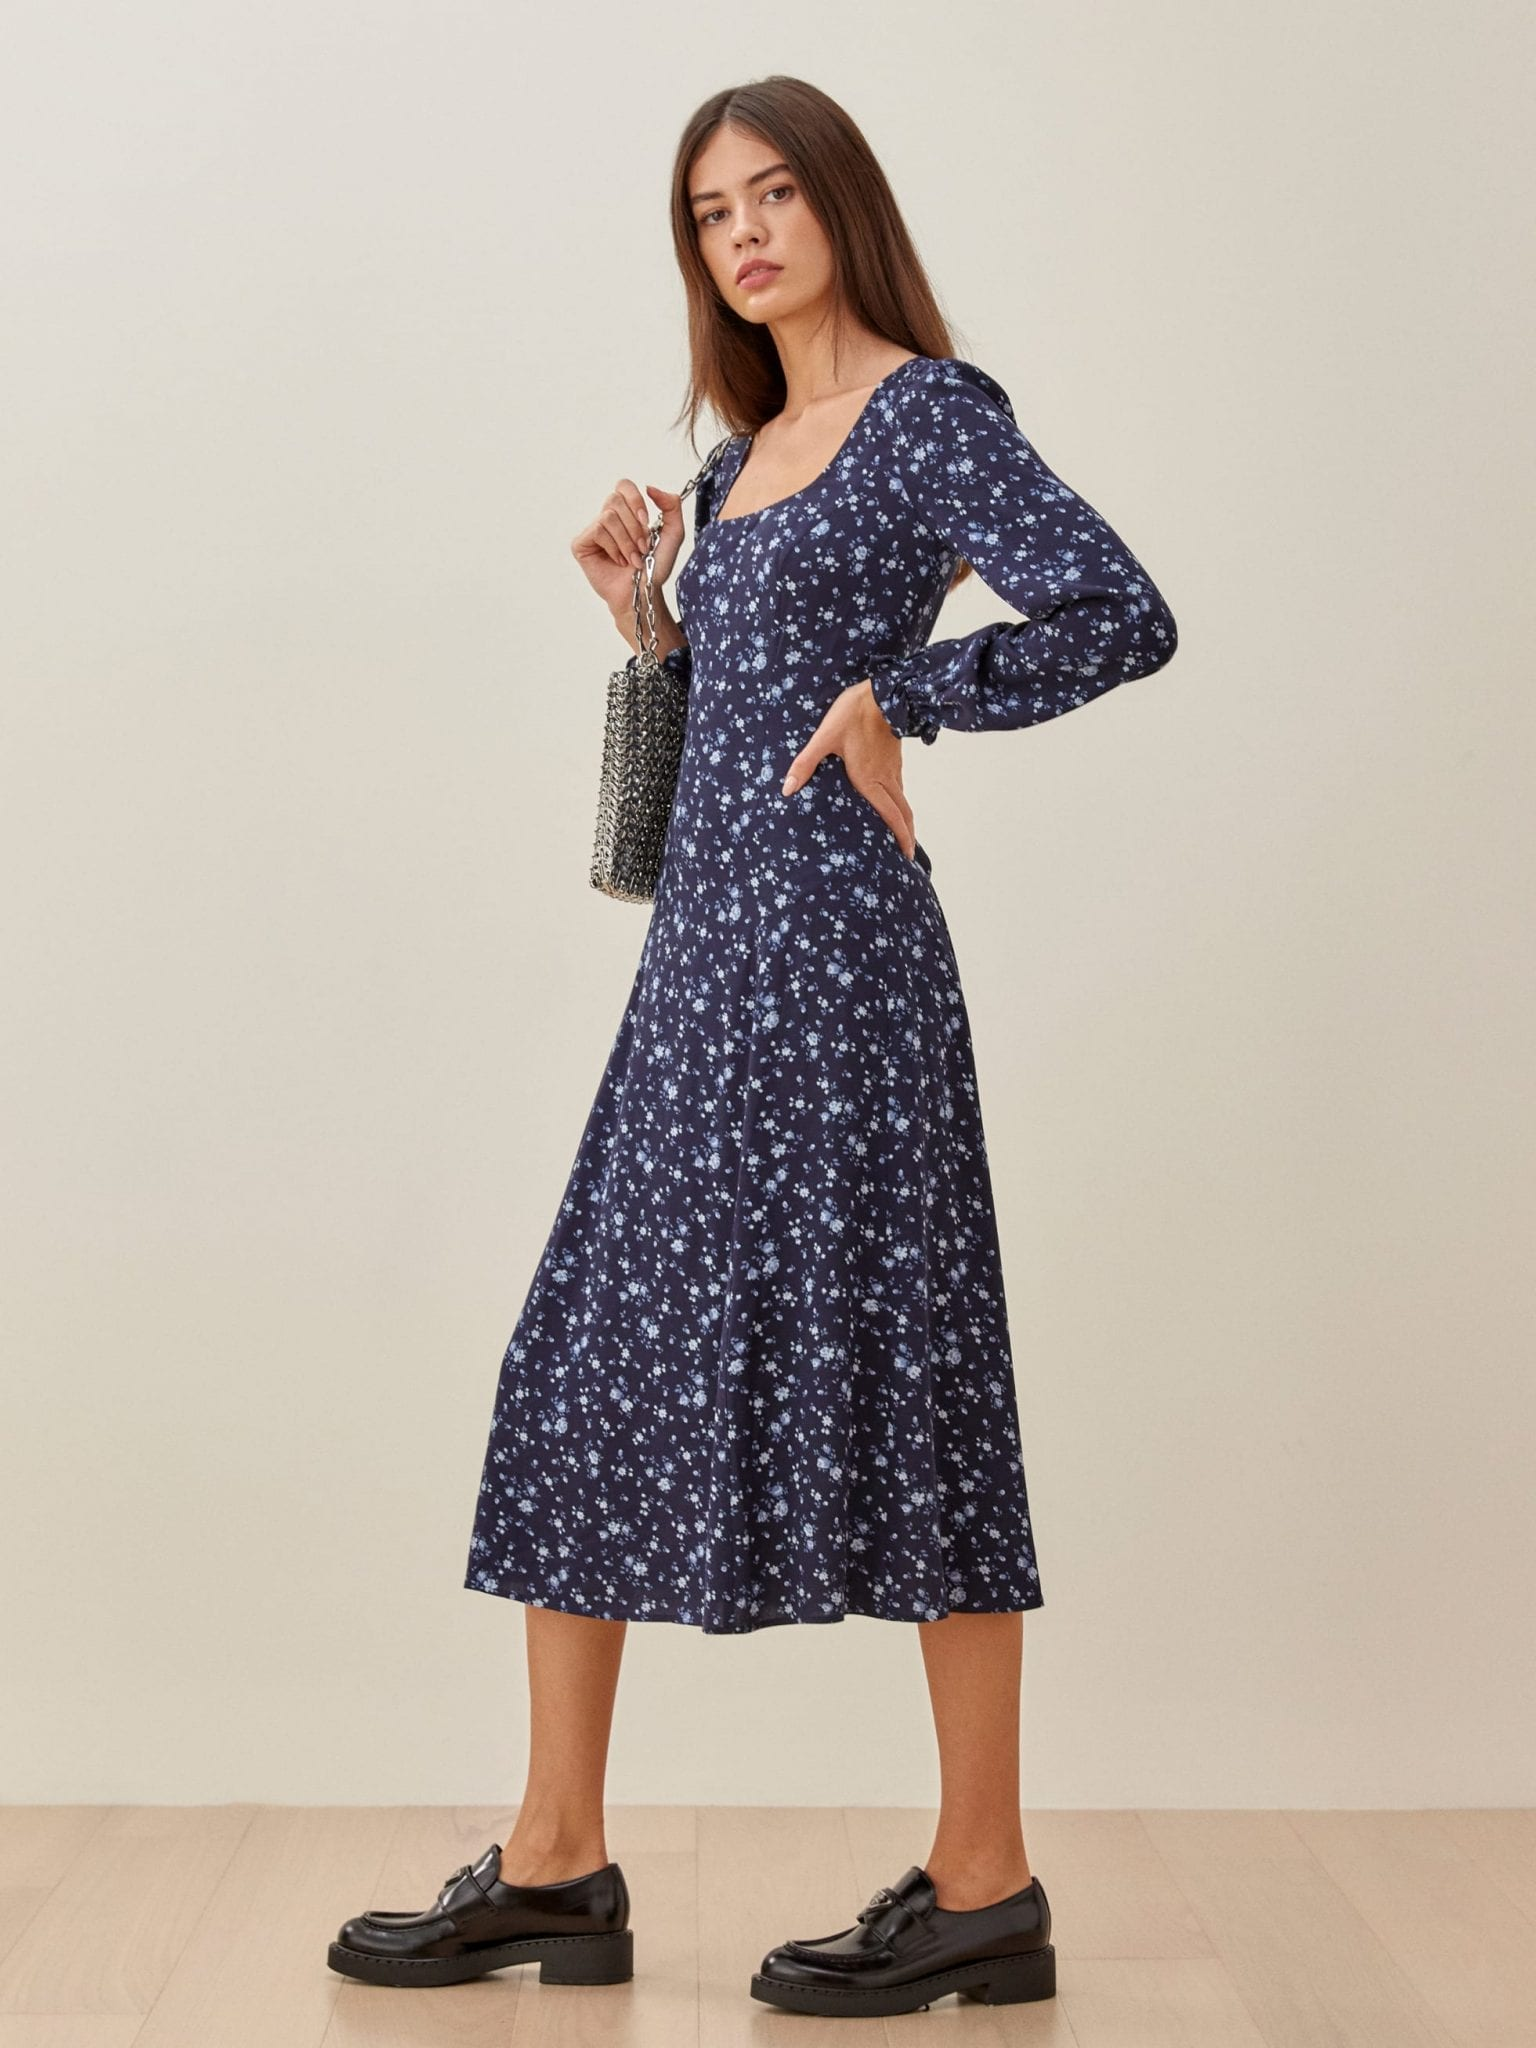 REFORMATION Woodstock Dress